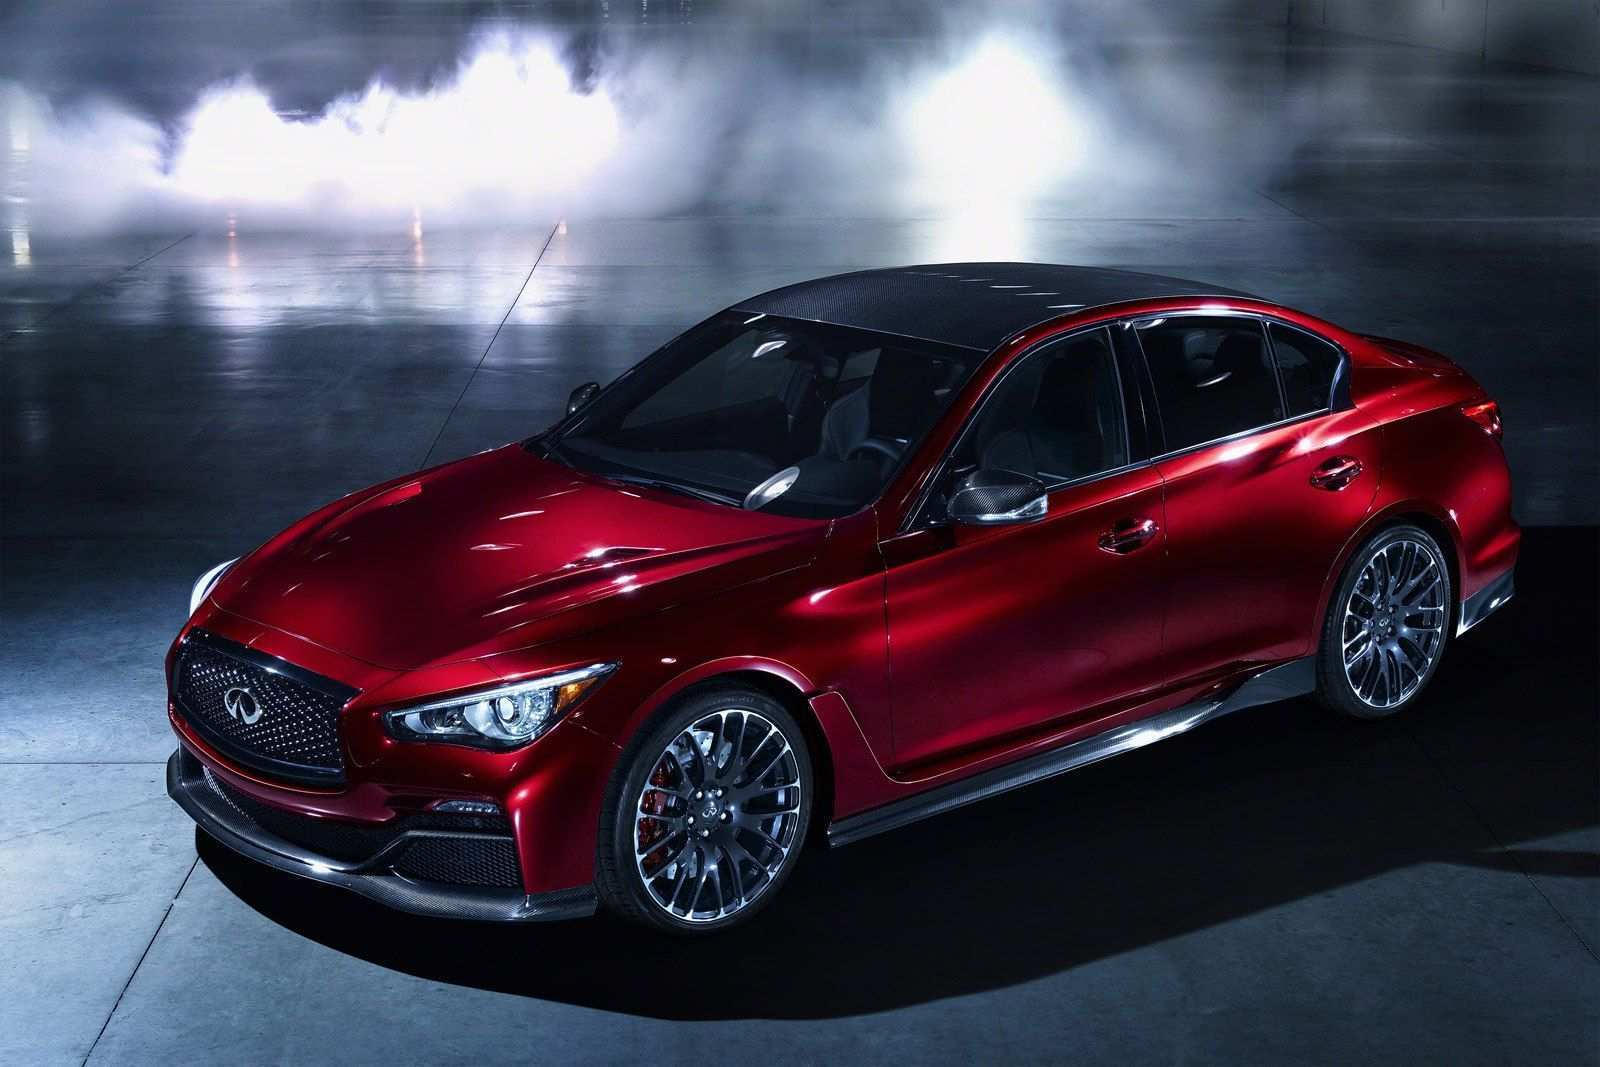 48 New 2020 Infiniti Q50 Coupe Eau Rouge Exterior for 2020 Infiniti Q50 Coupe Eau Rouge